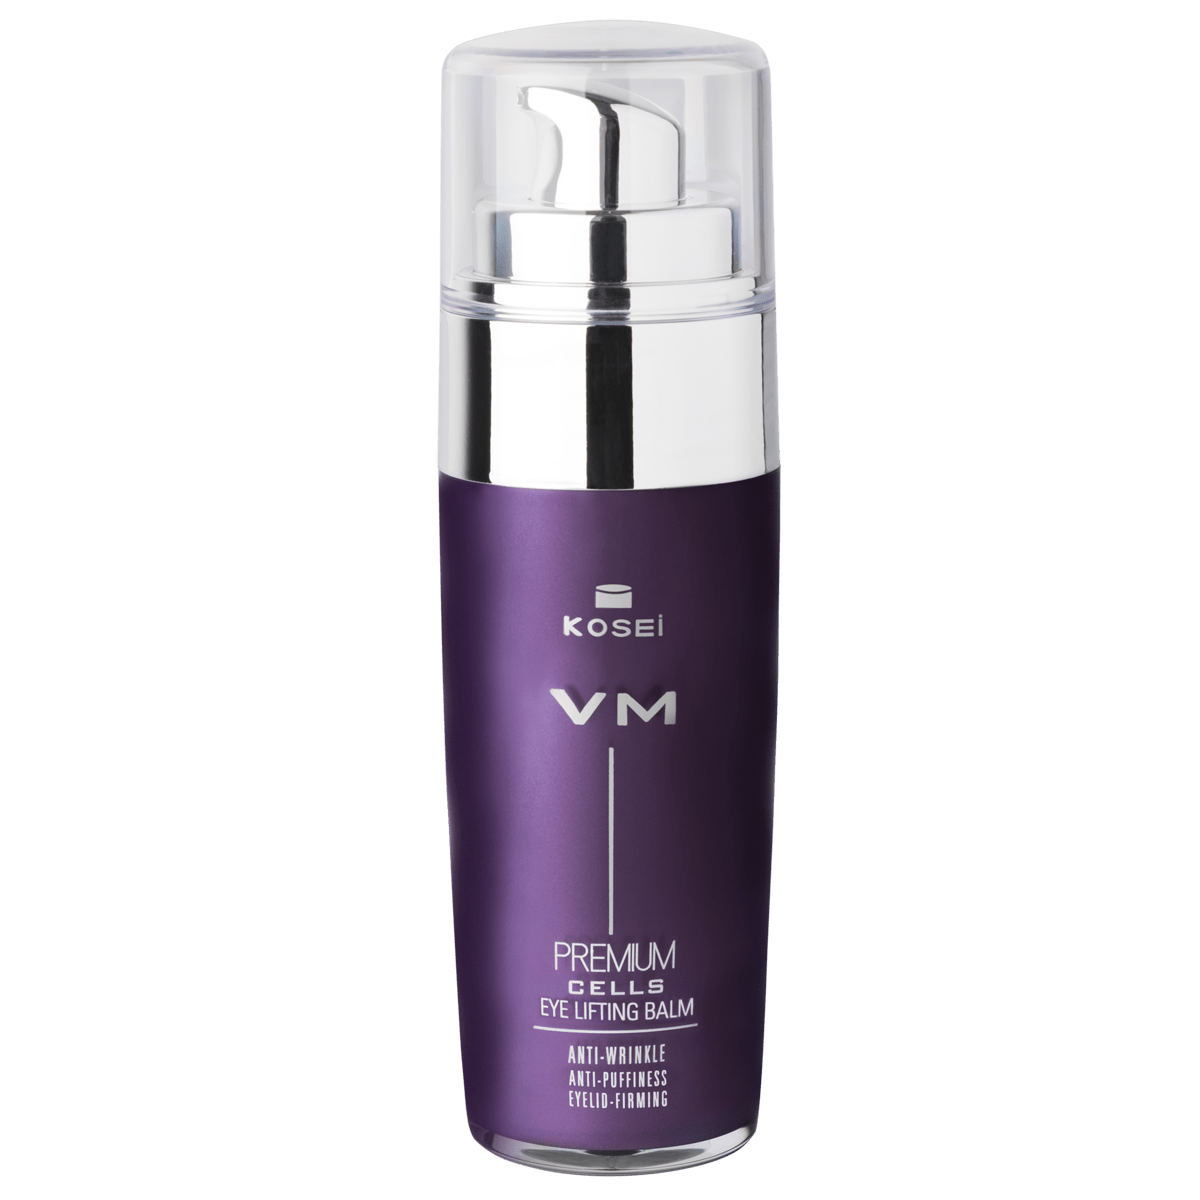 VM PREMIUM CELLS serum lifting eye balm. Crema contorno de ojos